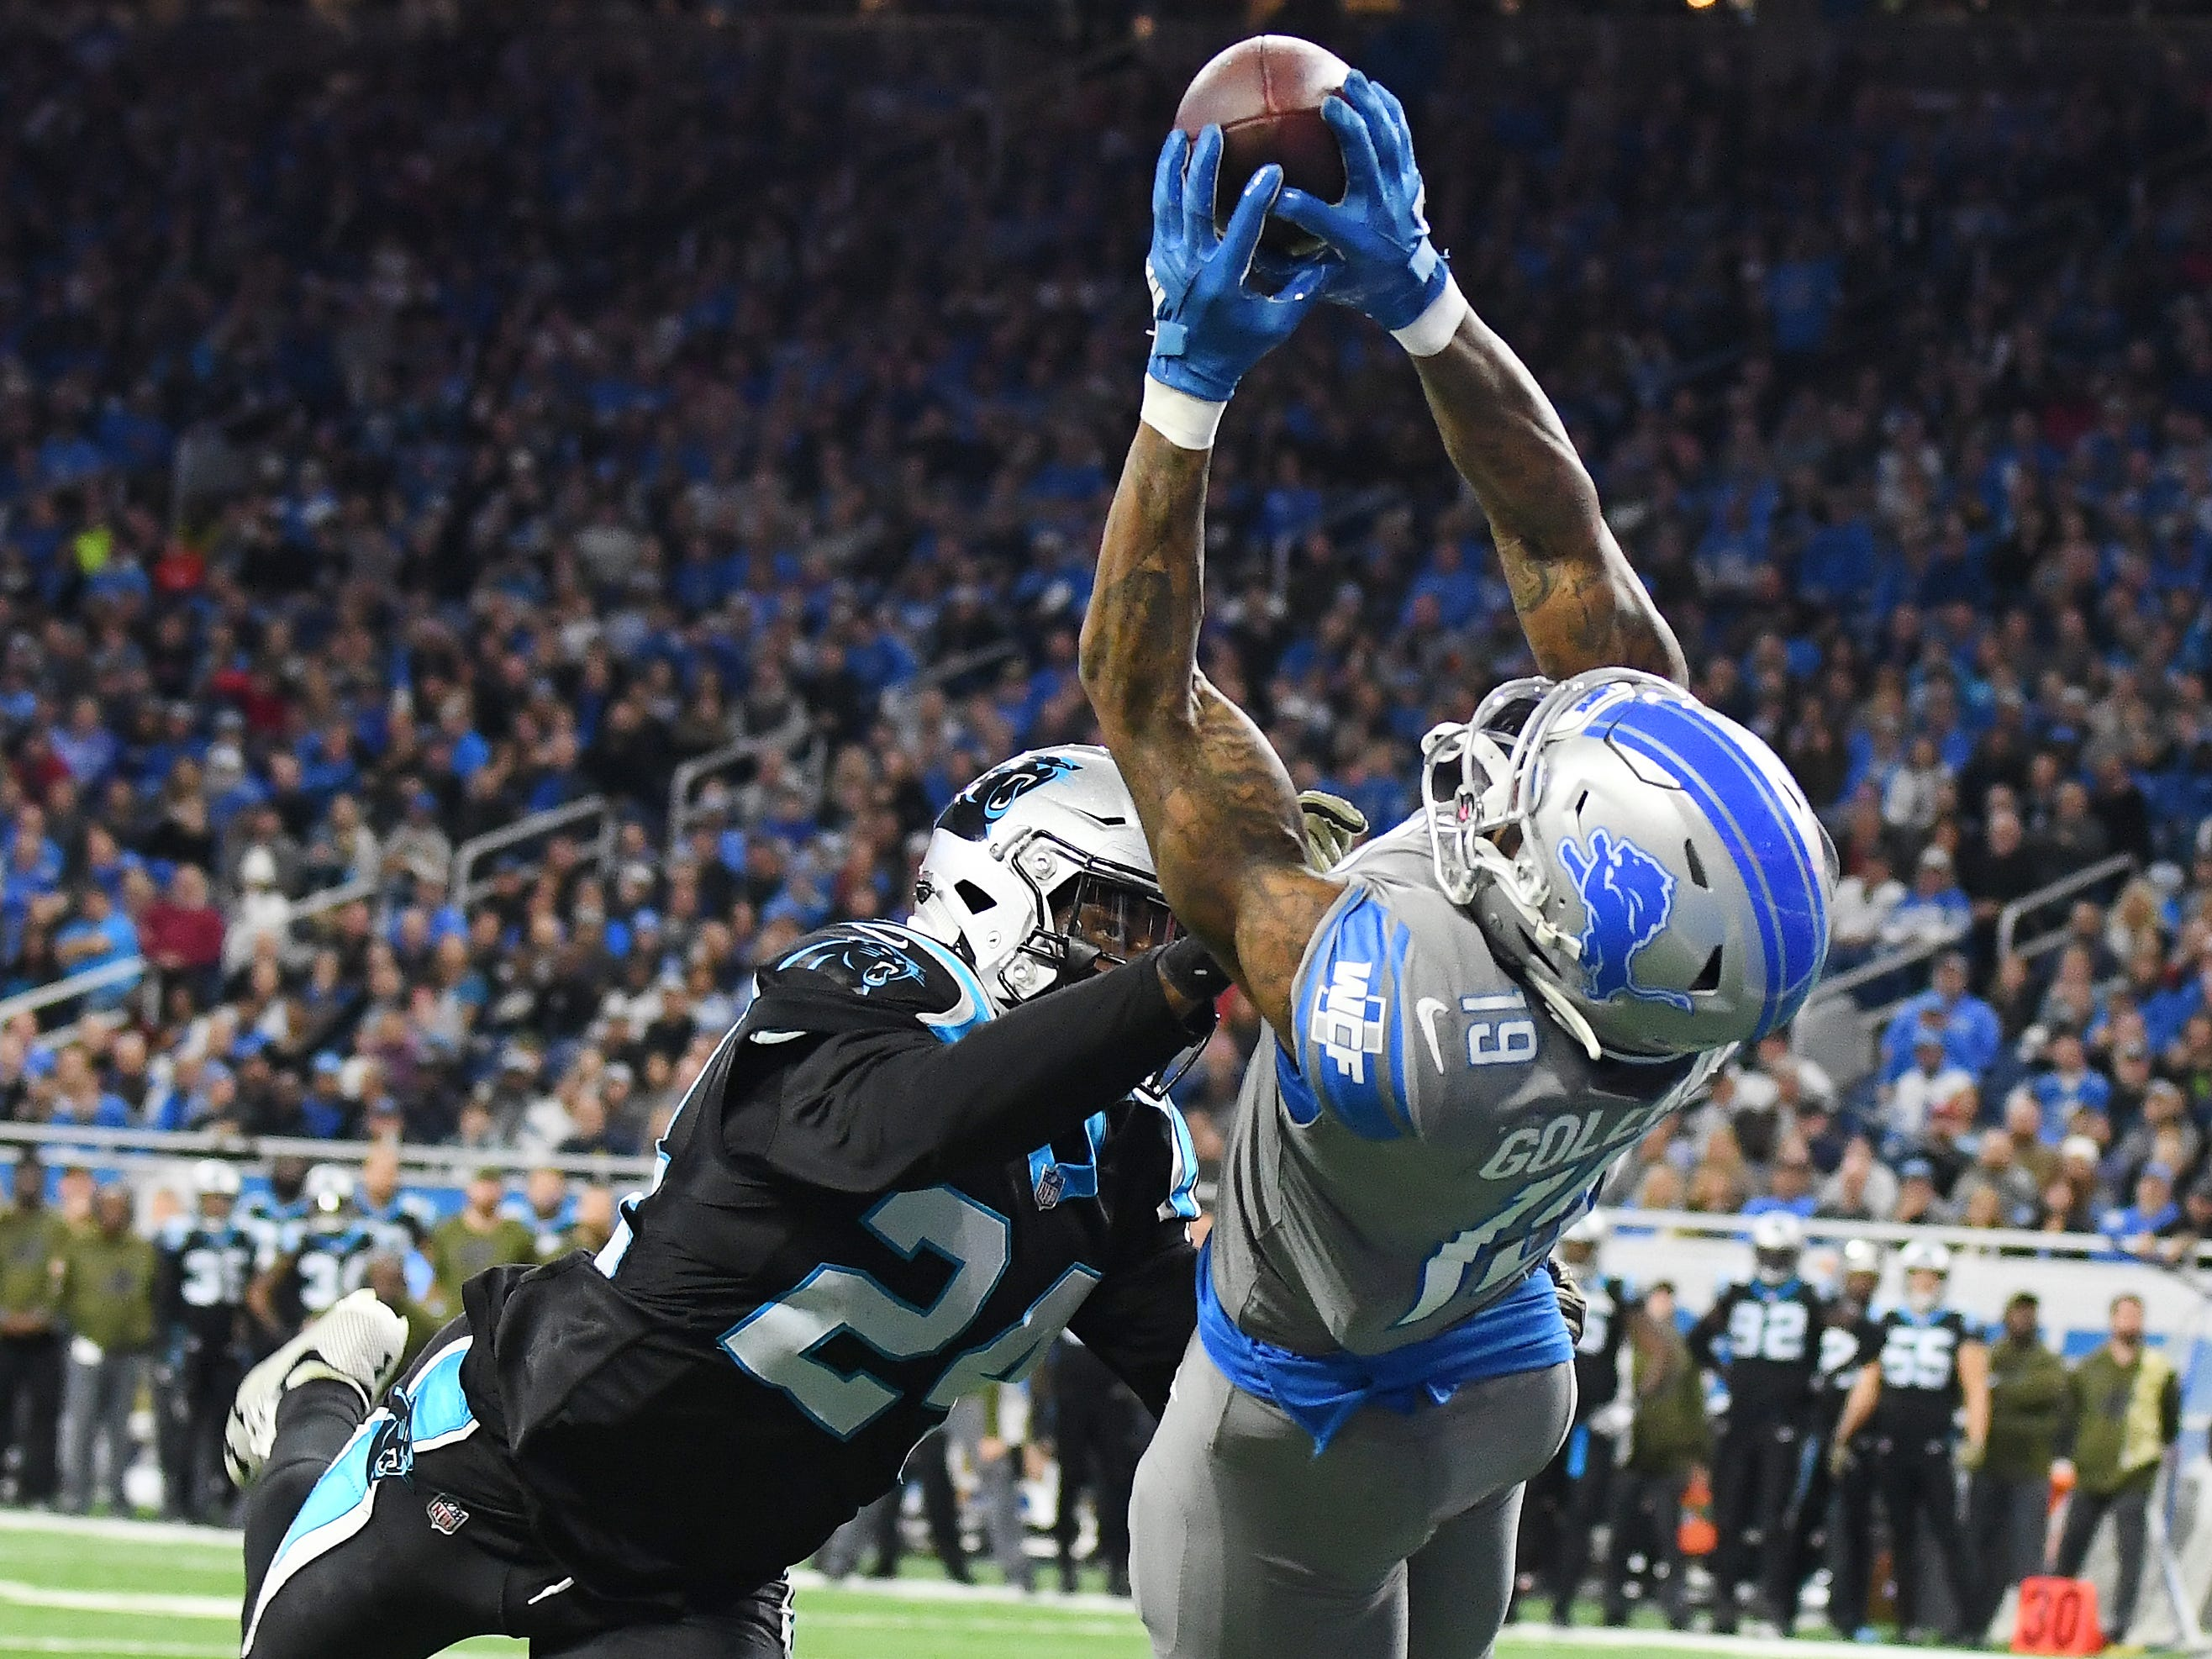 Lions wide receiver Kenny Golladay makes the winning touchdown catch in front of Panthers cornerback James Bradberry late in the fourth quarter.